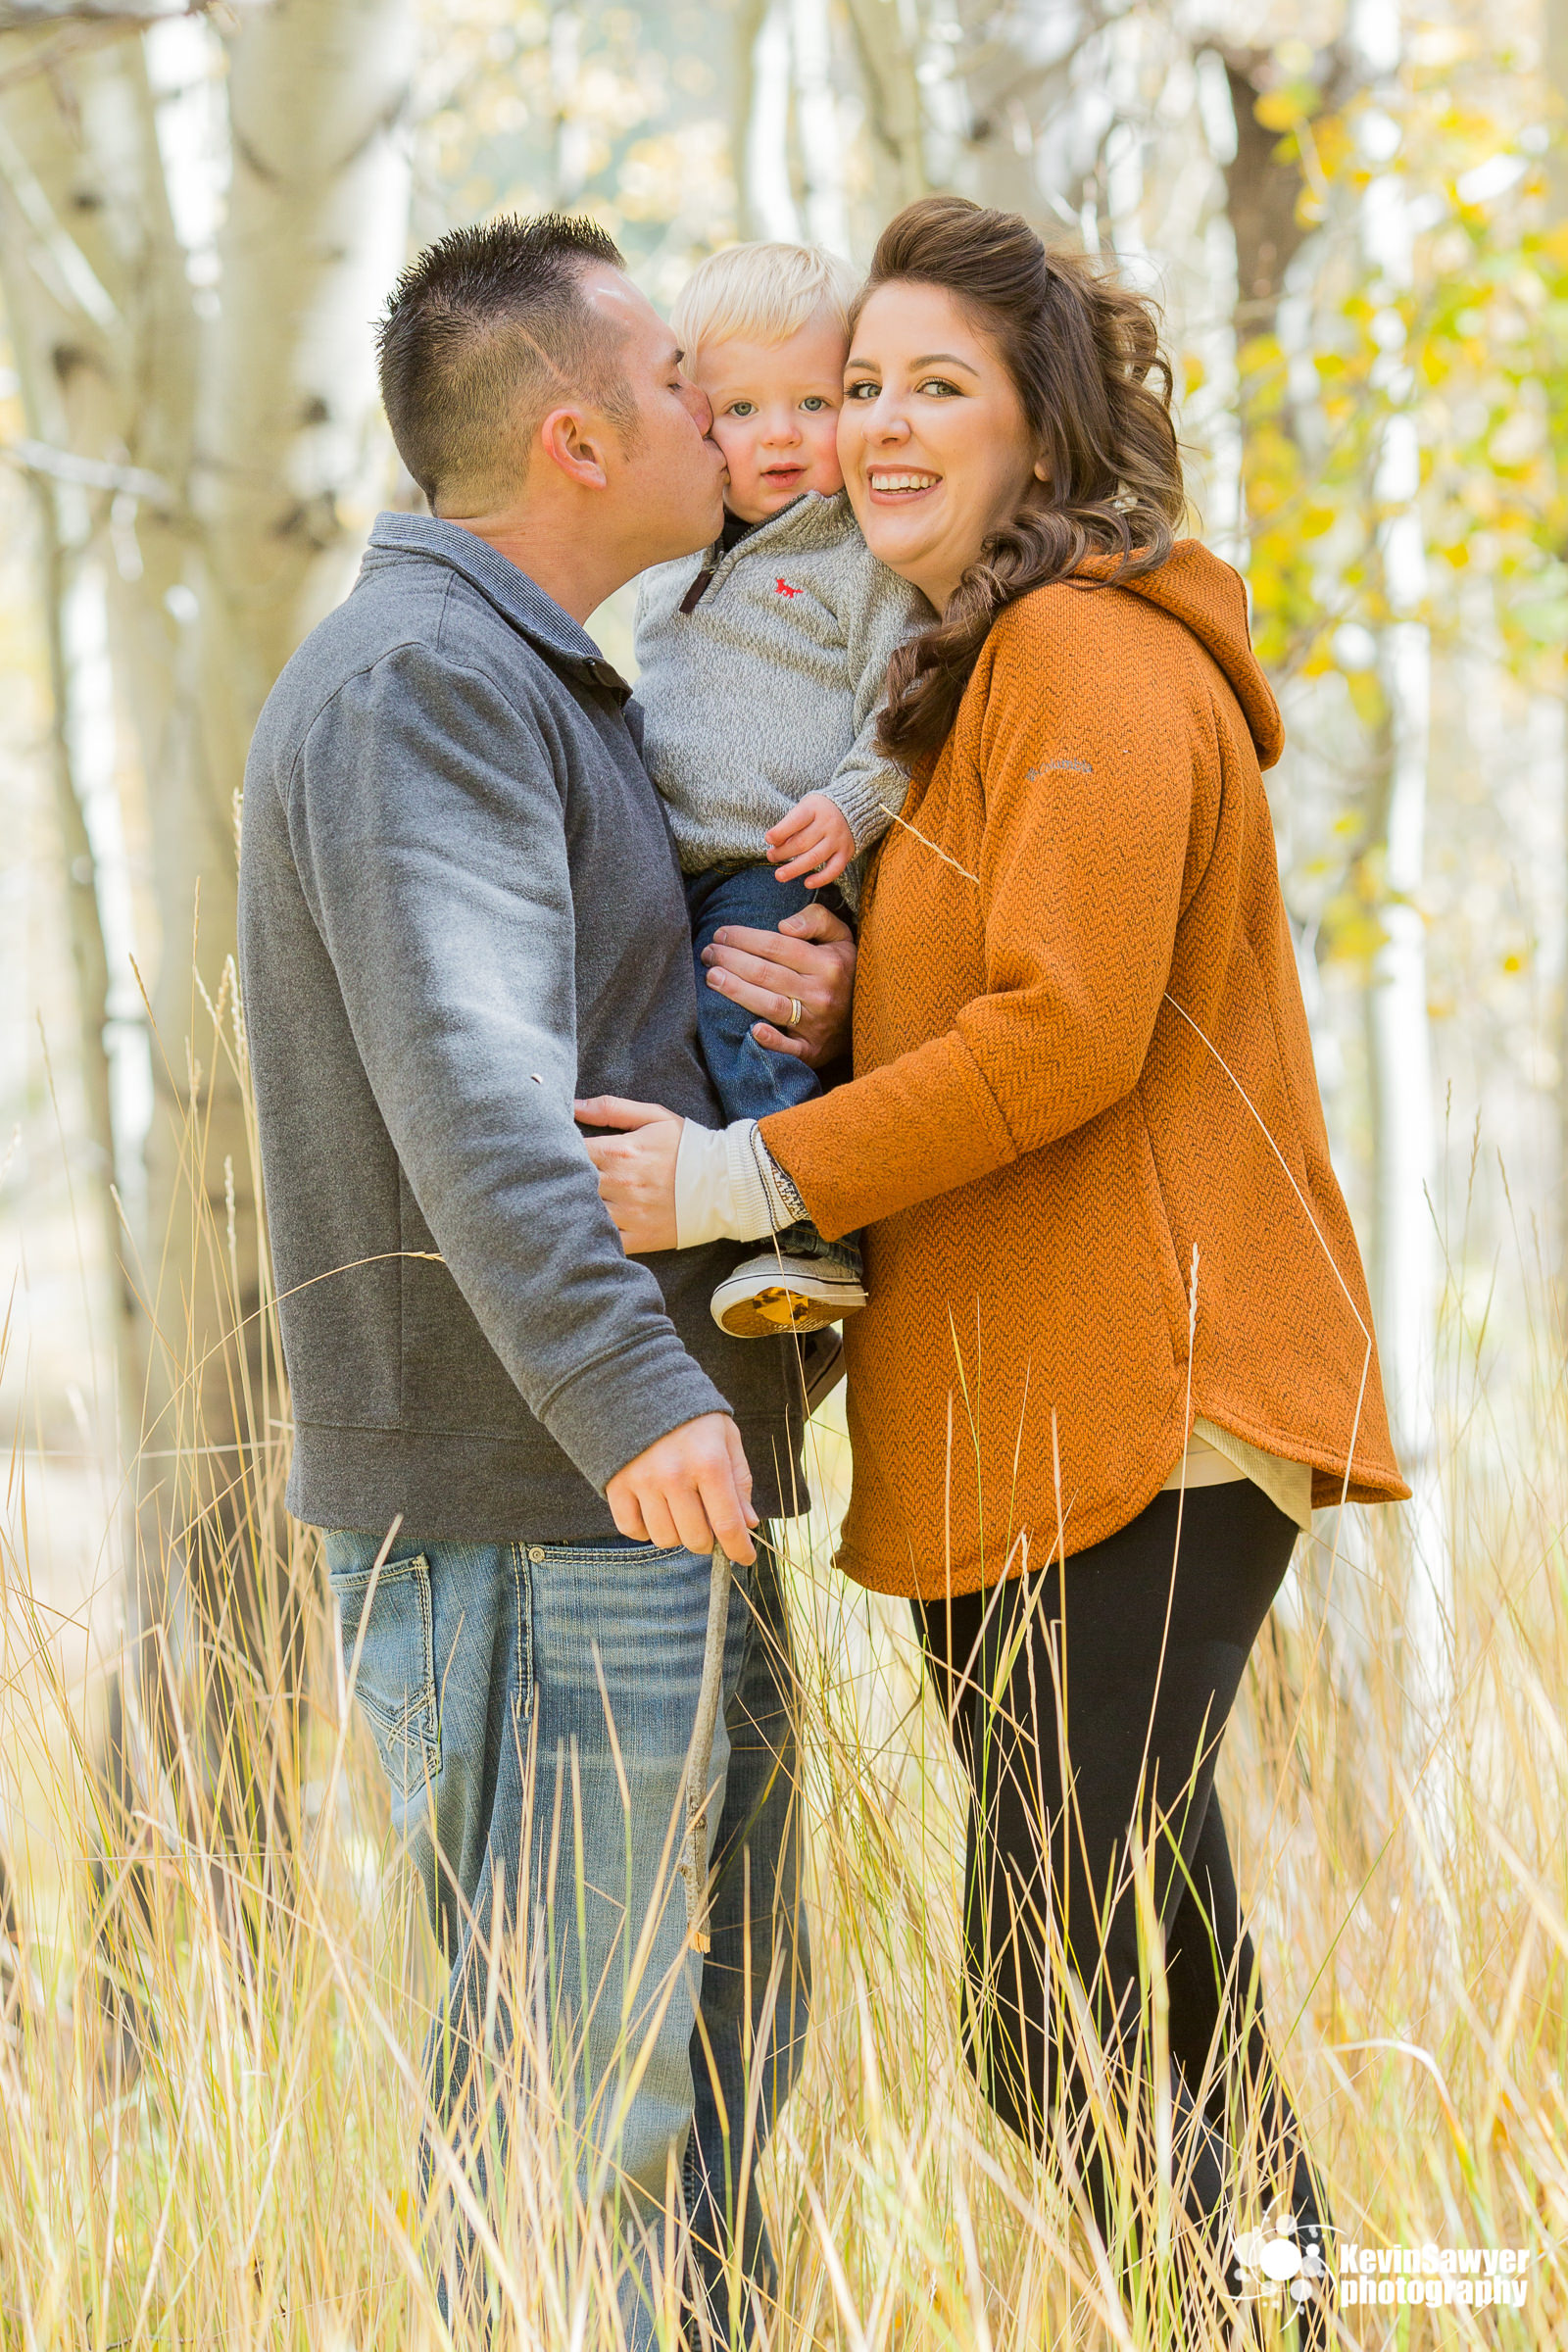 lake-tahoe-hope-valley-family-portrait-photographer-kevin-sawyer-photography-fall-photos